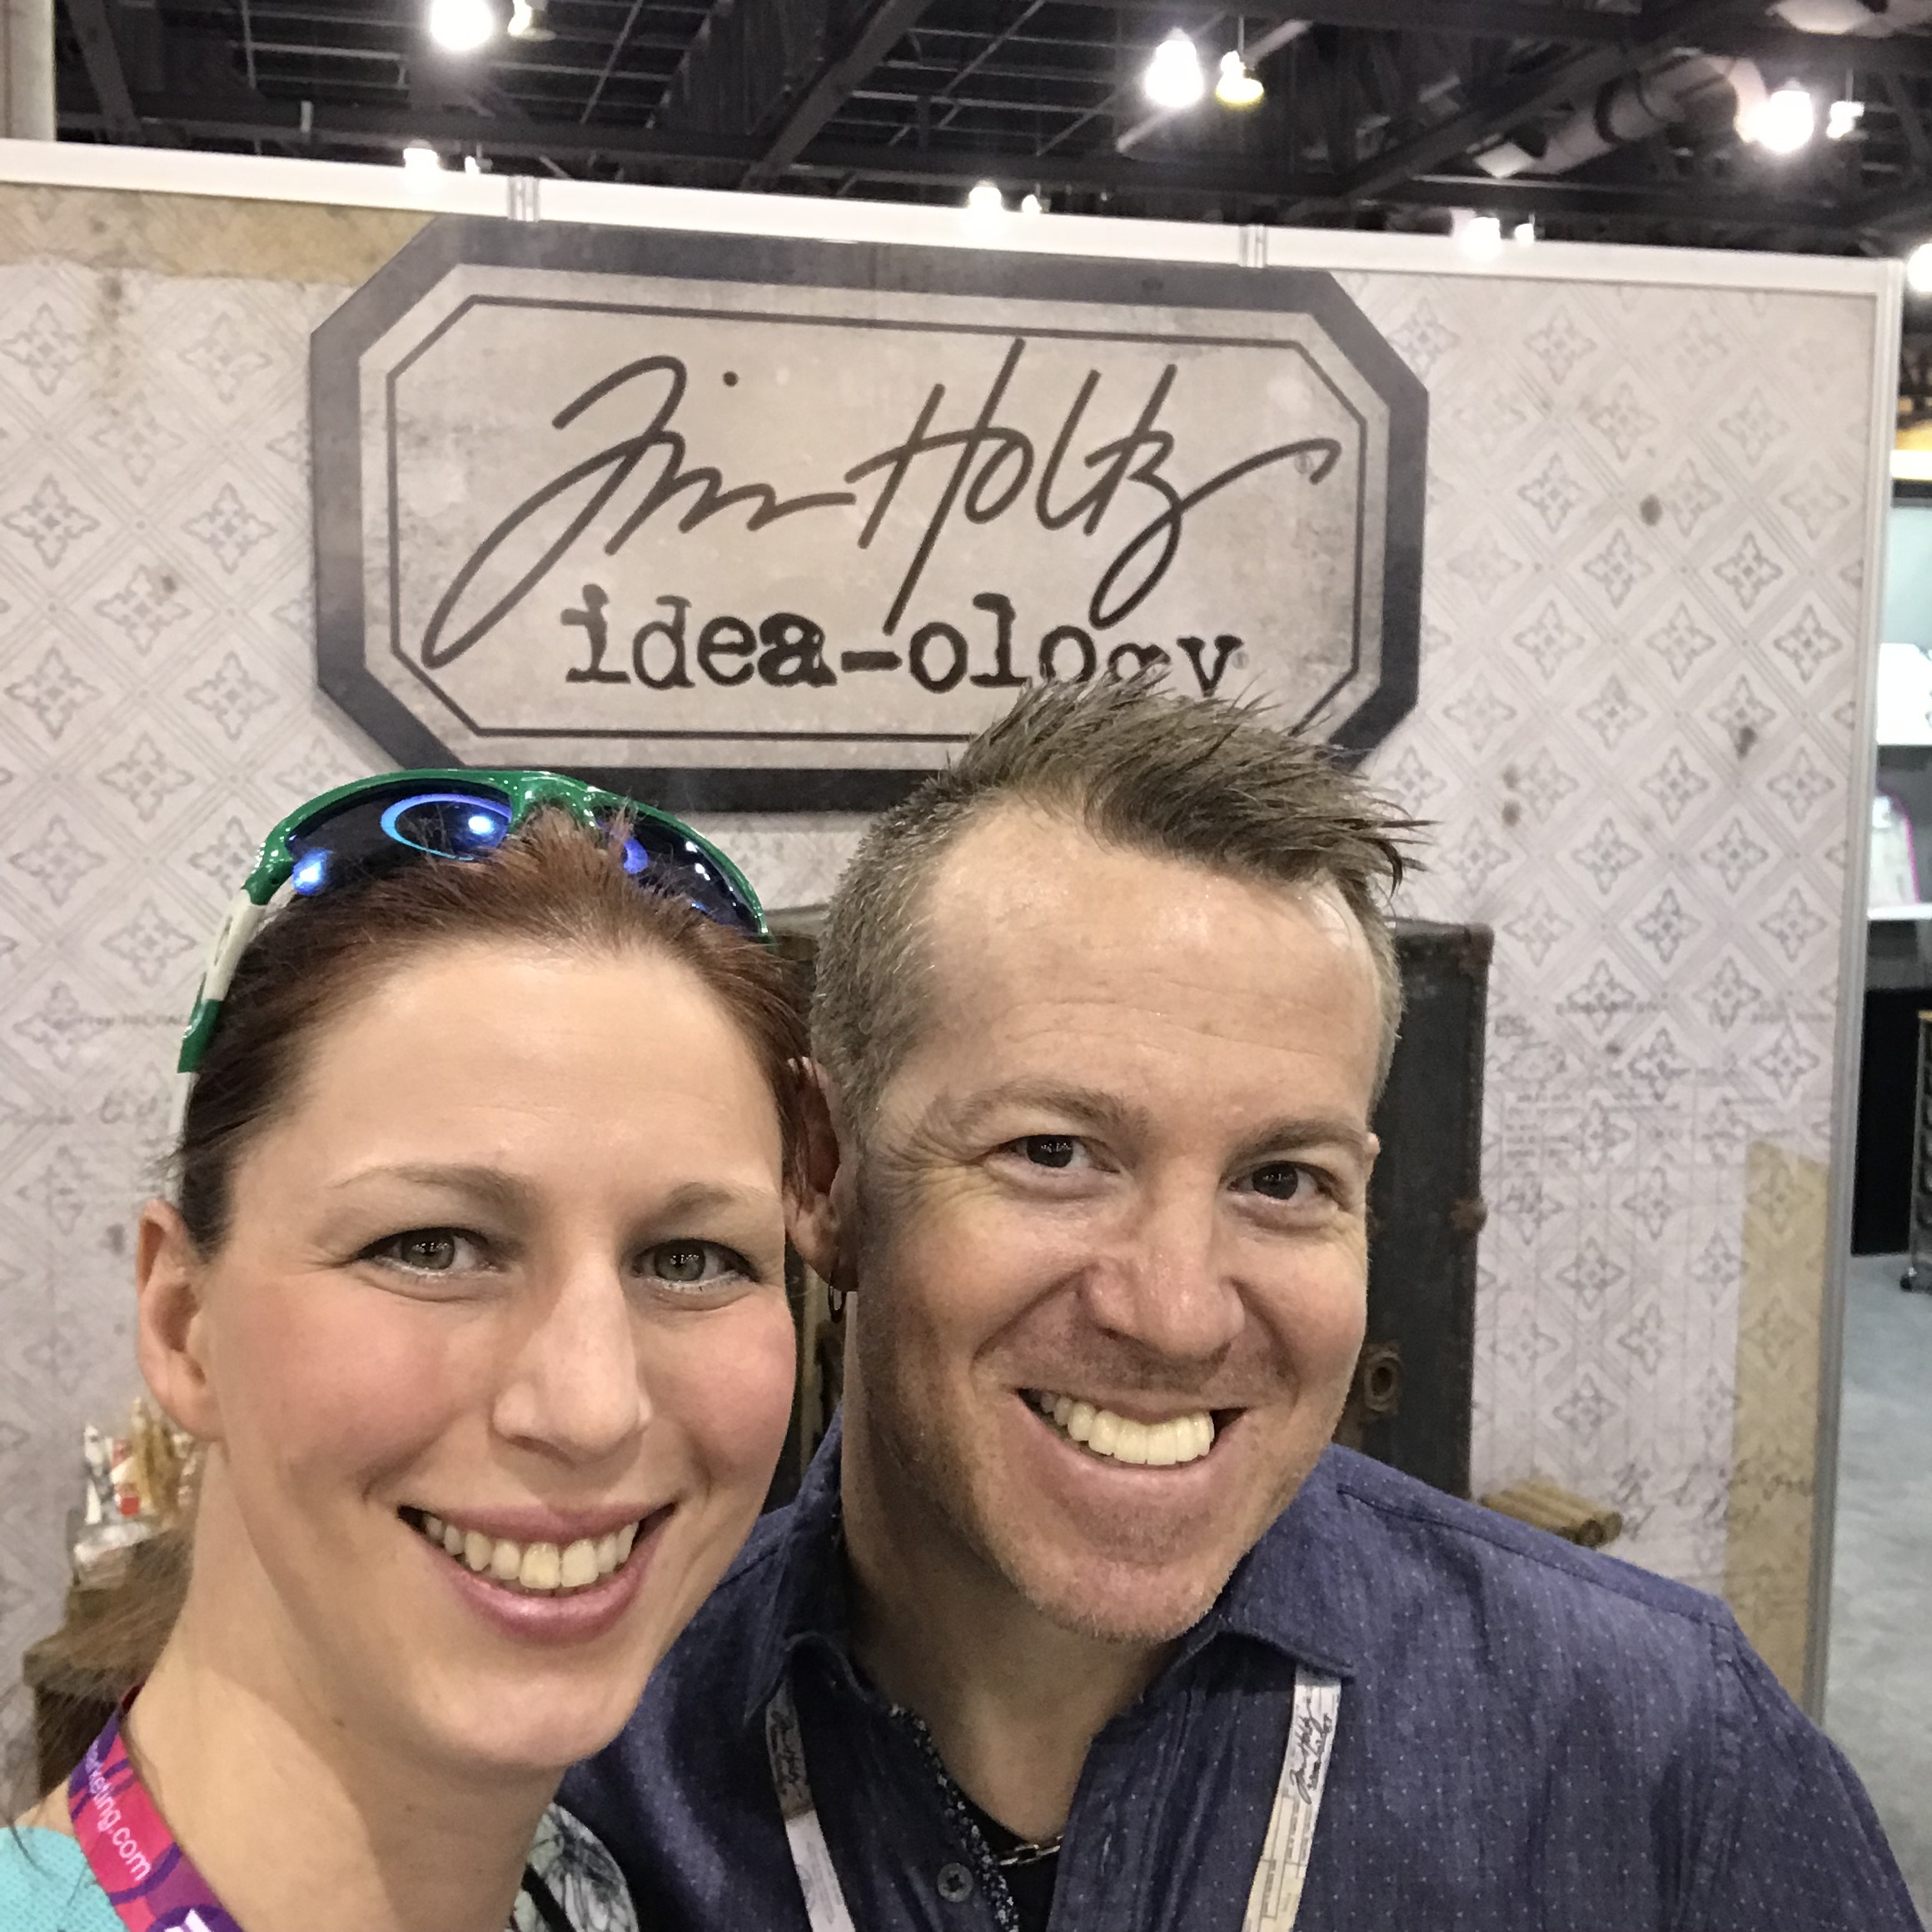 With Tim Holtz